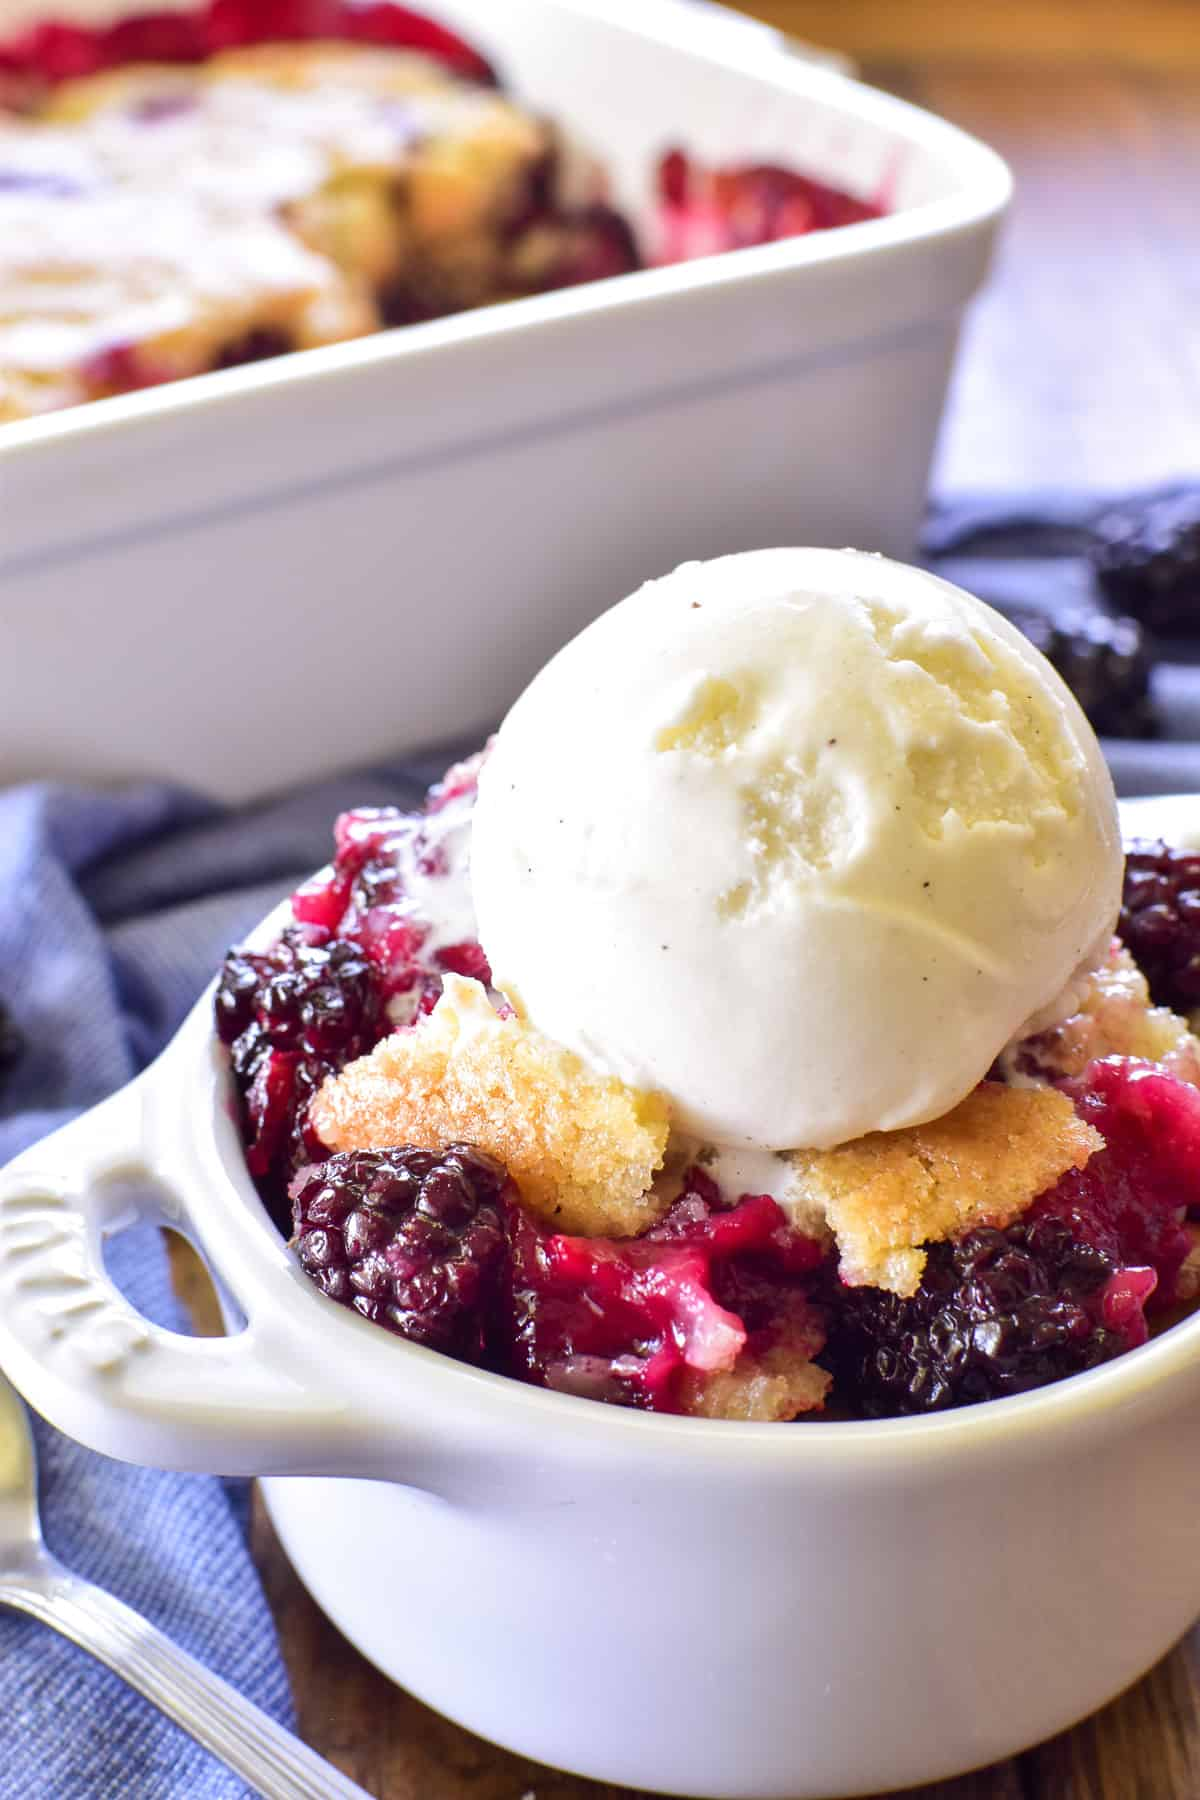 Blackberry Cobbler in a white dish with a scoop of ice cream